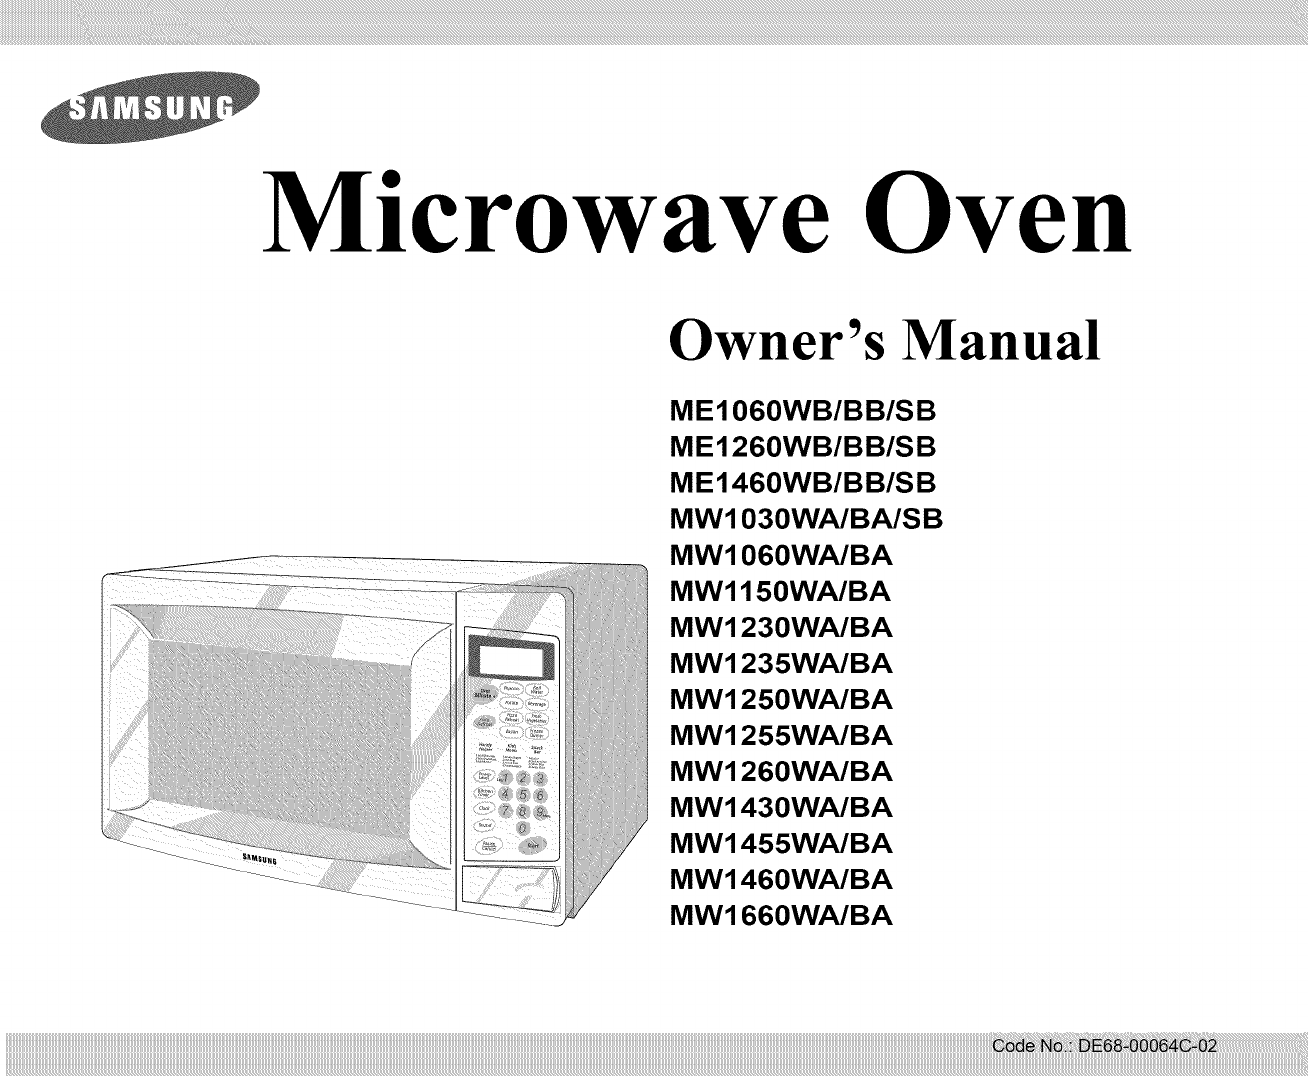 SAMSUNG Countertop Microwave Manual L0904661